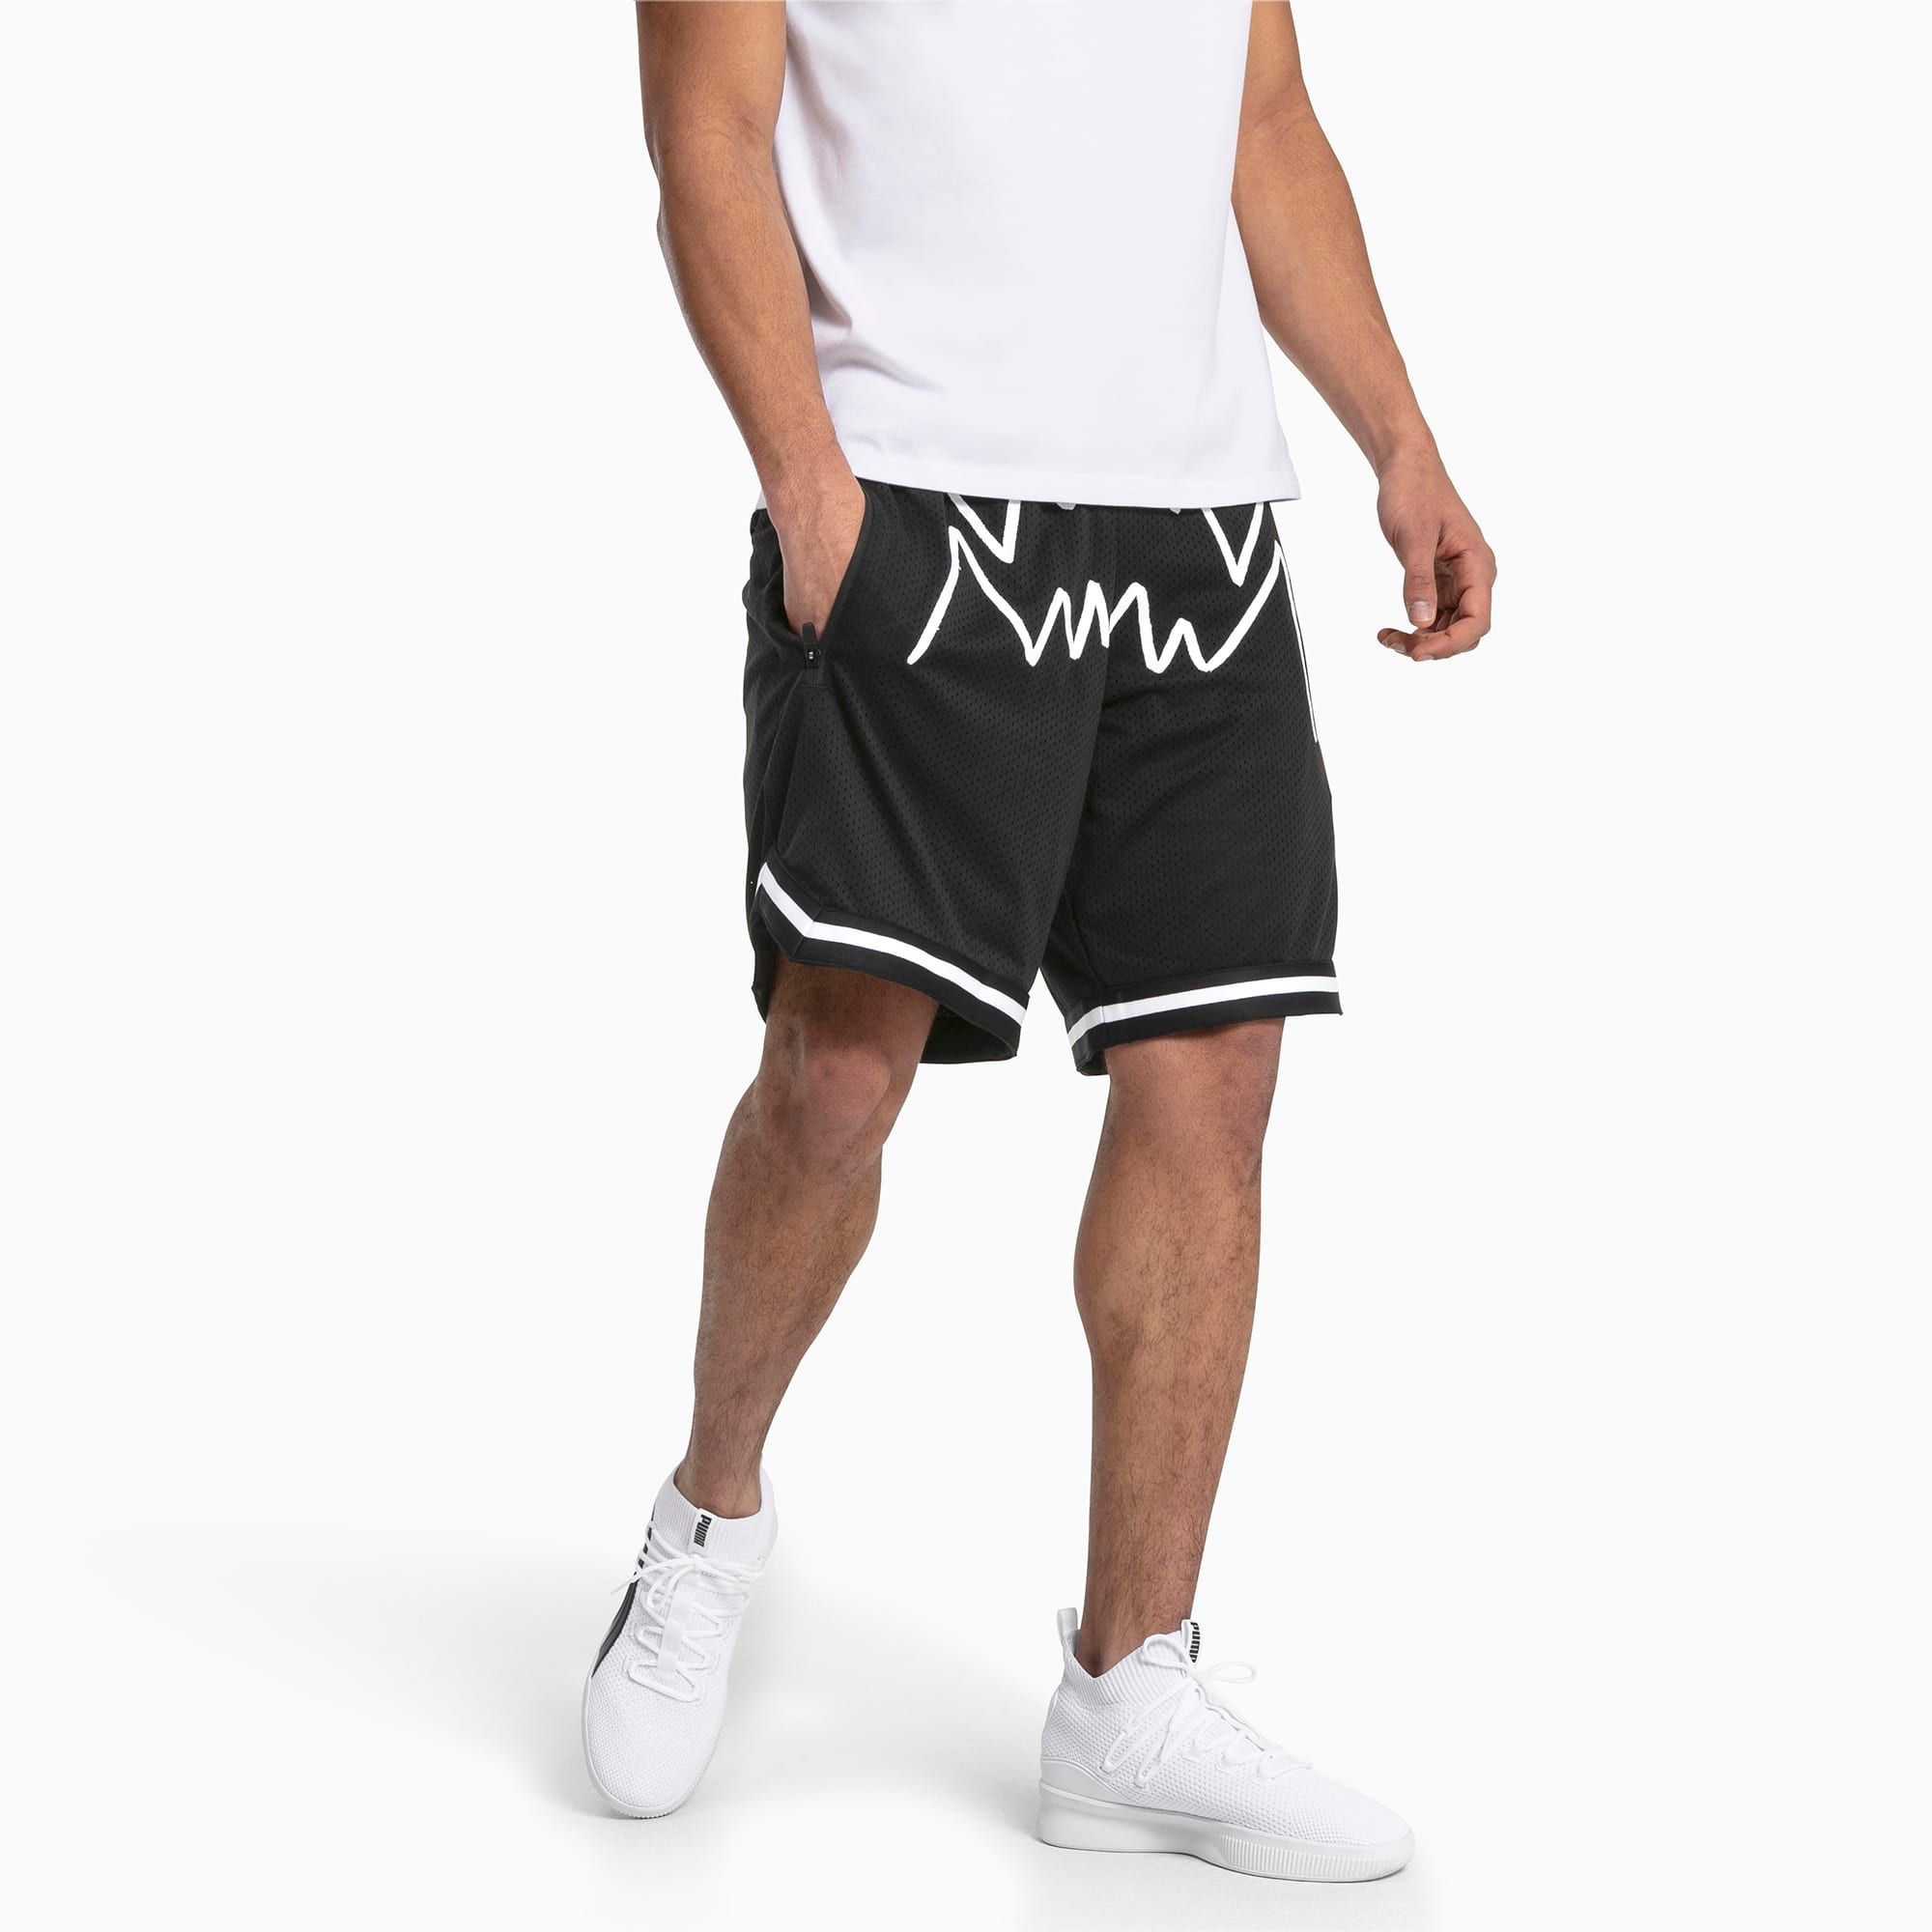 2 Pack Black Mesh Basketball Shorts Mens Athletic Shorts Gym Shorts for Workout Sport with Pockets Above The Rim